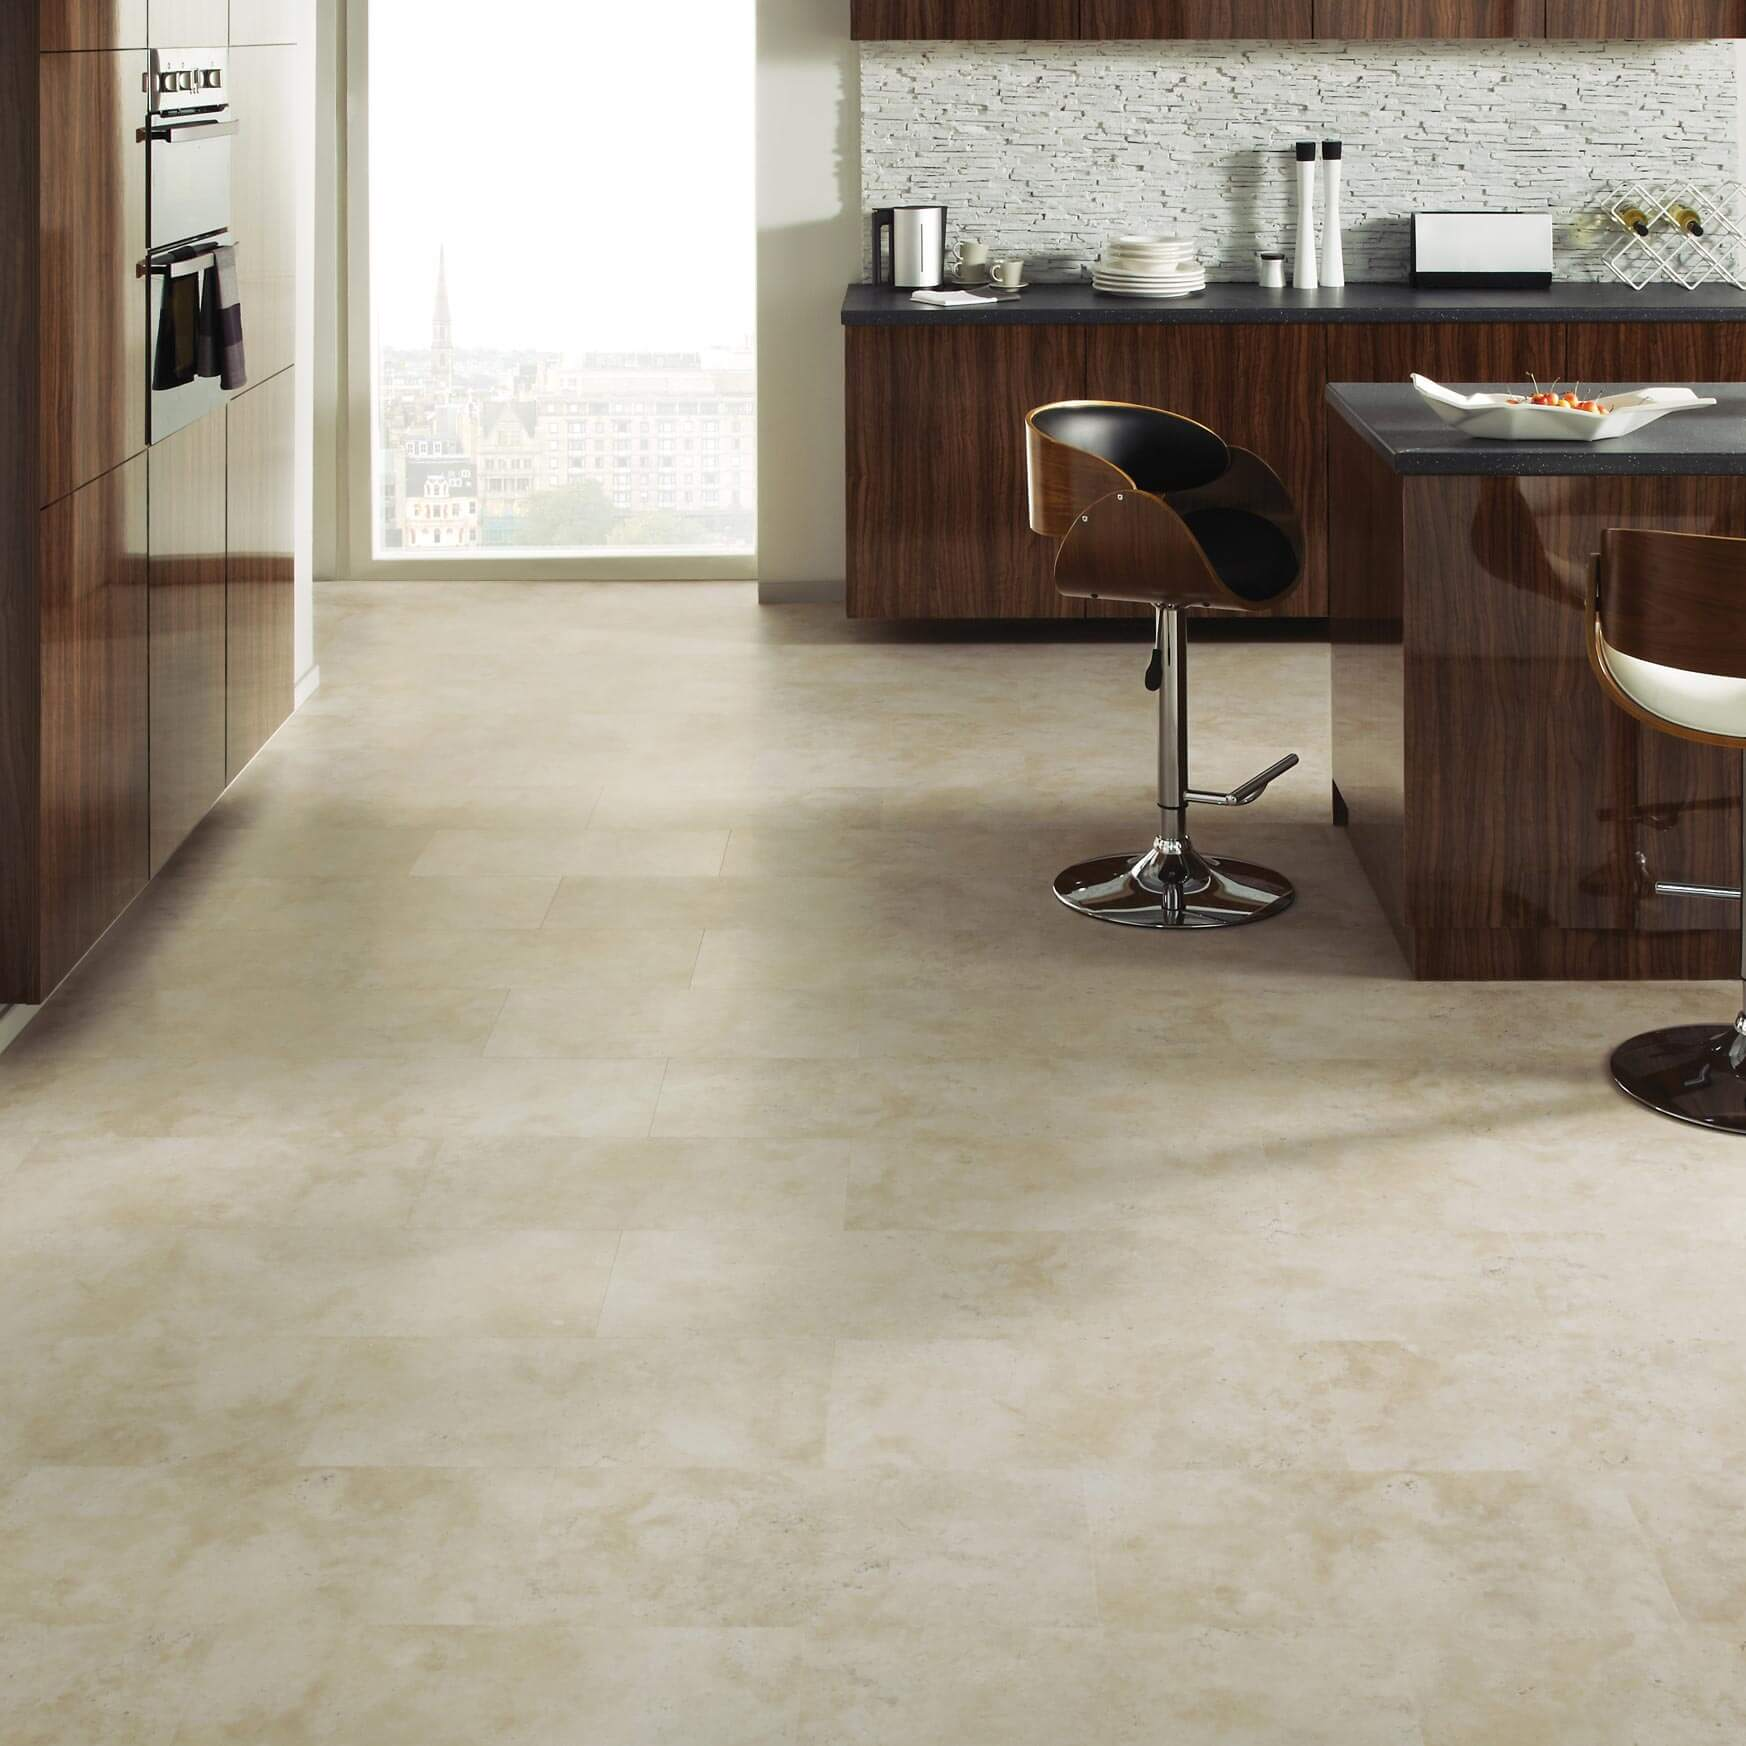 Karndean design luxury vinyl flooring suppliers in cumbria kqc we are proud of our association with karndean flooring dailygadgetfo Choice Image